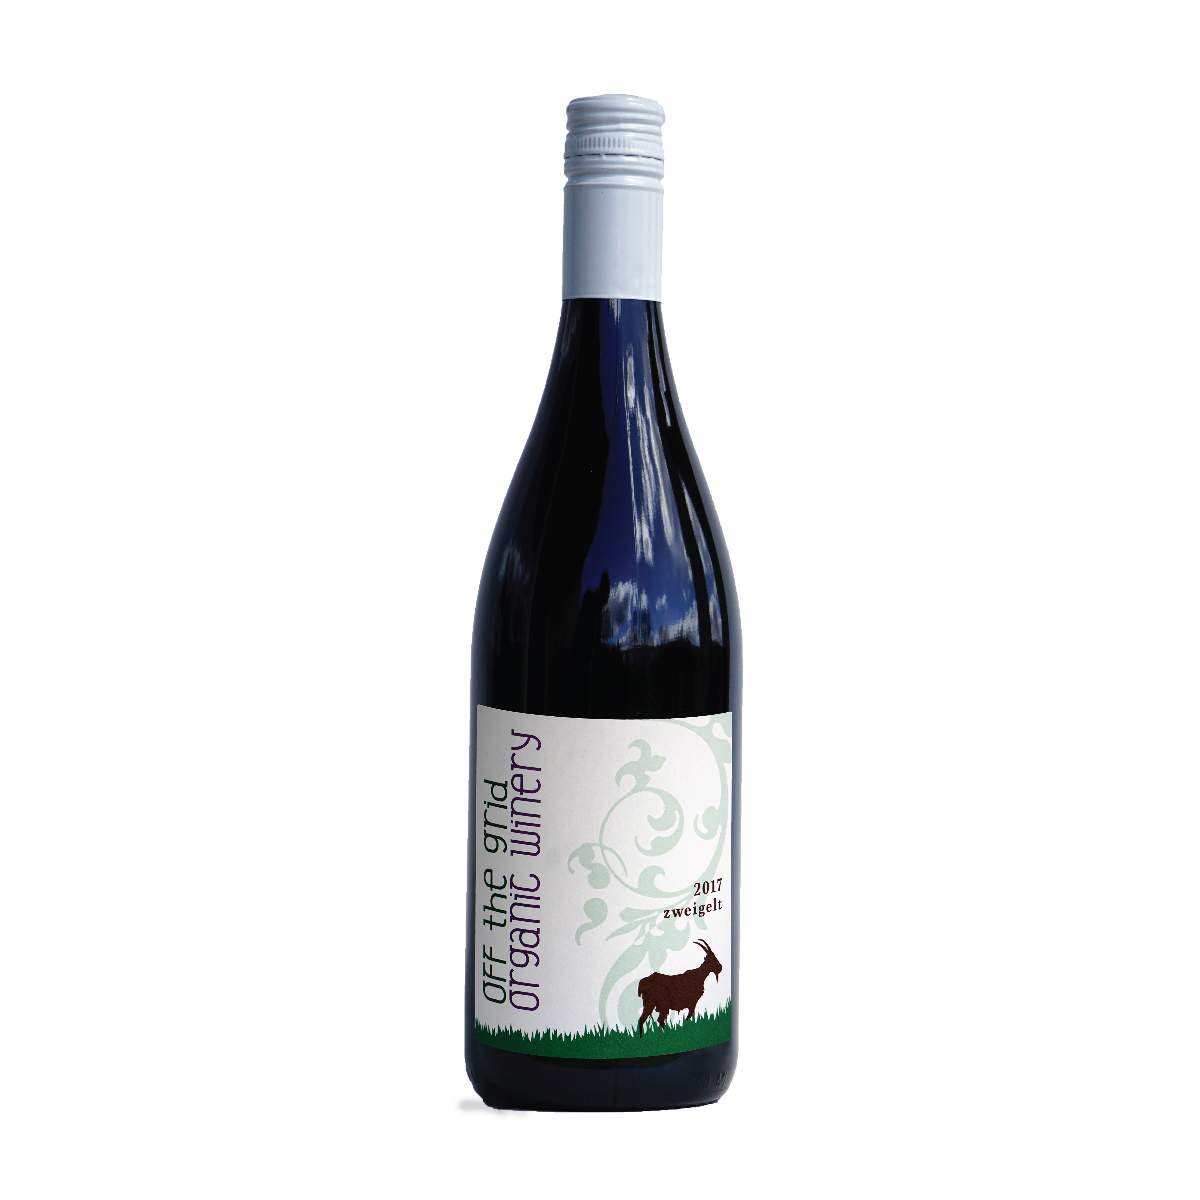 SOLD OUT2017 Zweigelt - $35.00This Zweigelt should be decanted for a minimum of 30 minutes to expose its maraschino and bing cherry notes. Caramel, tobacco and smoke round out this medium bodied light sipping wine. A wonderful pair for pizza, lighter meats and pork dishes.